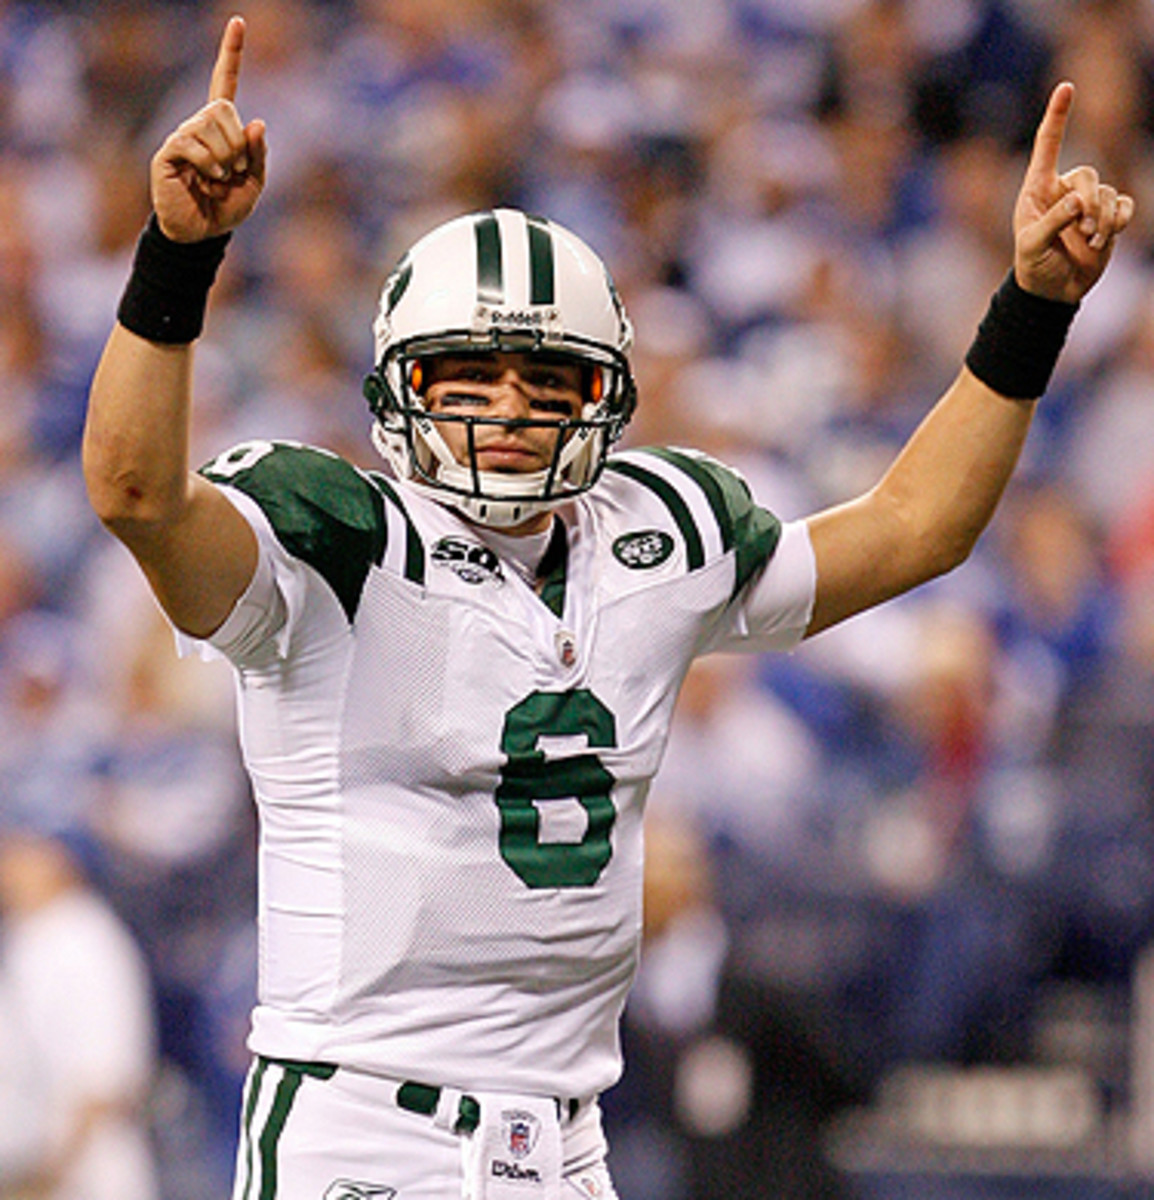 Since leaving the Jets in 2013, Mark Sanchez has been on the roster of three NFL teams: Eagles, Broncos and Cowboys.